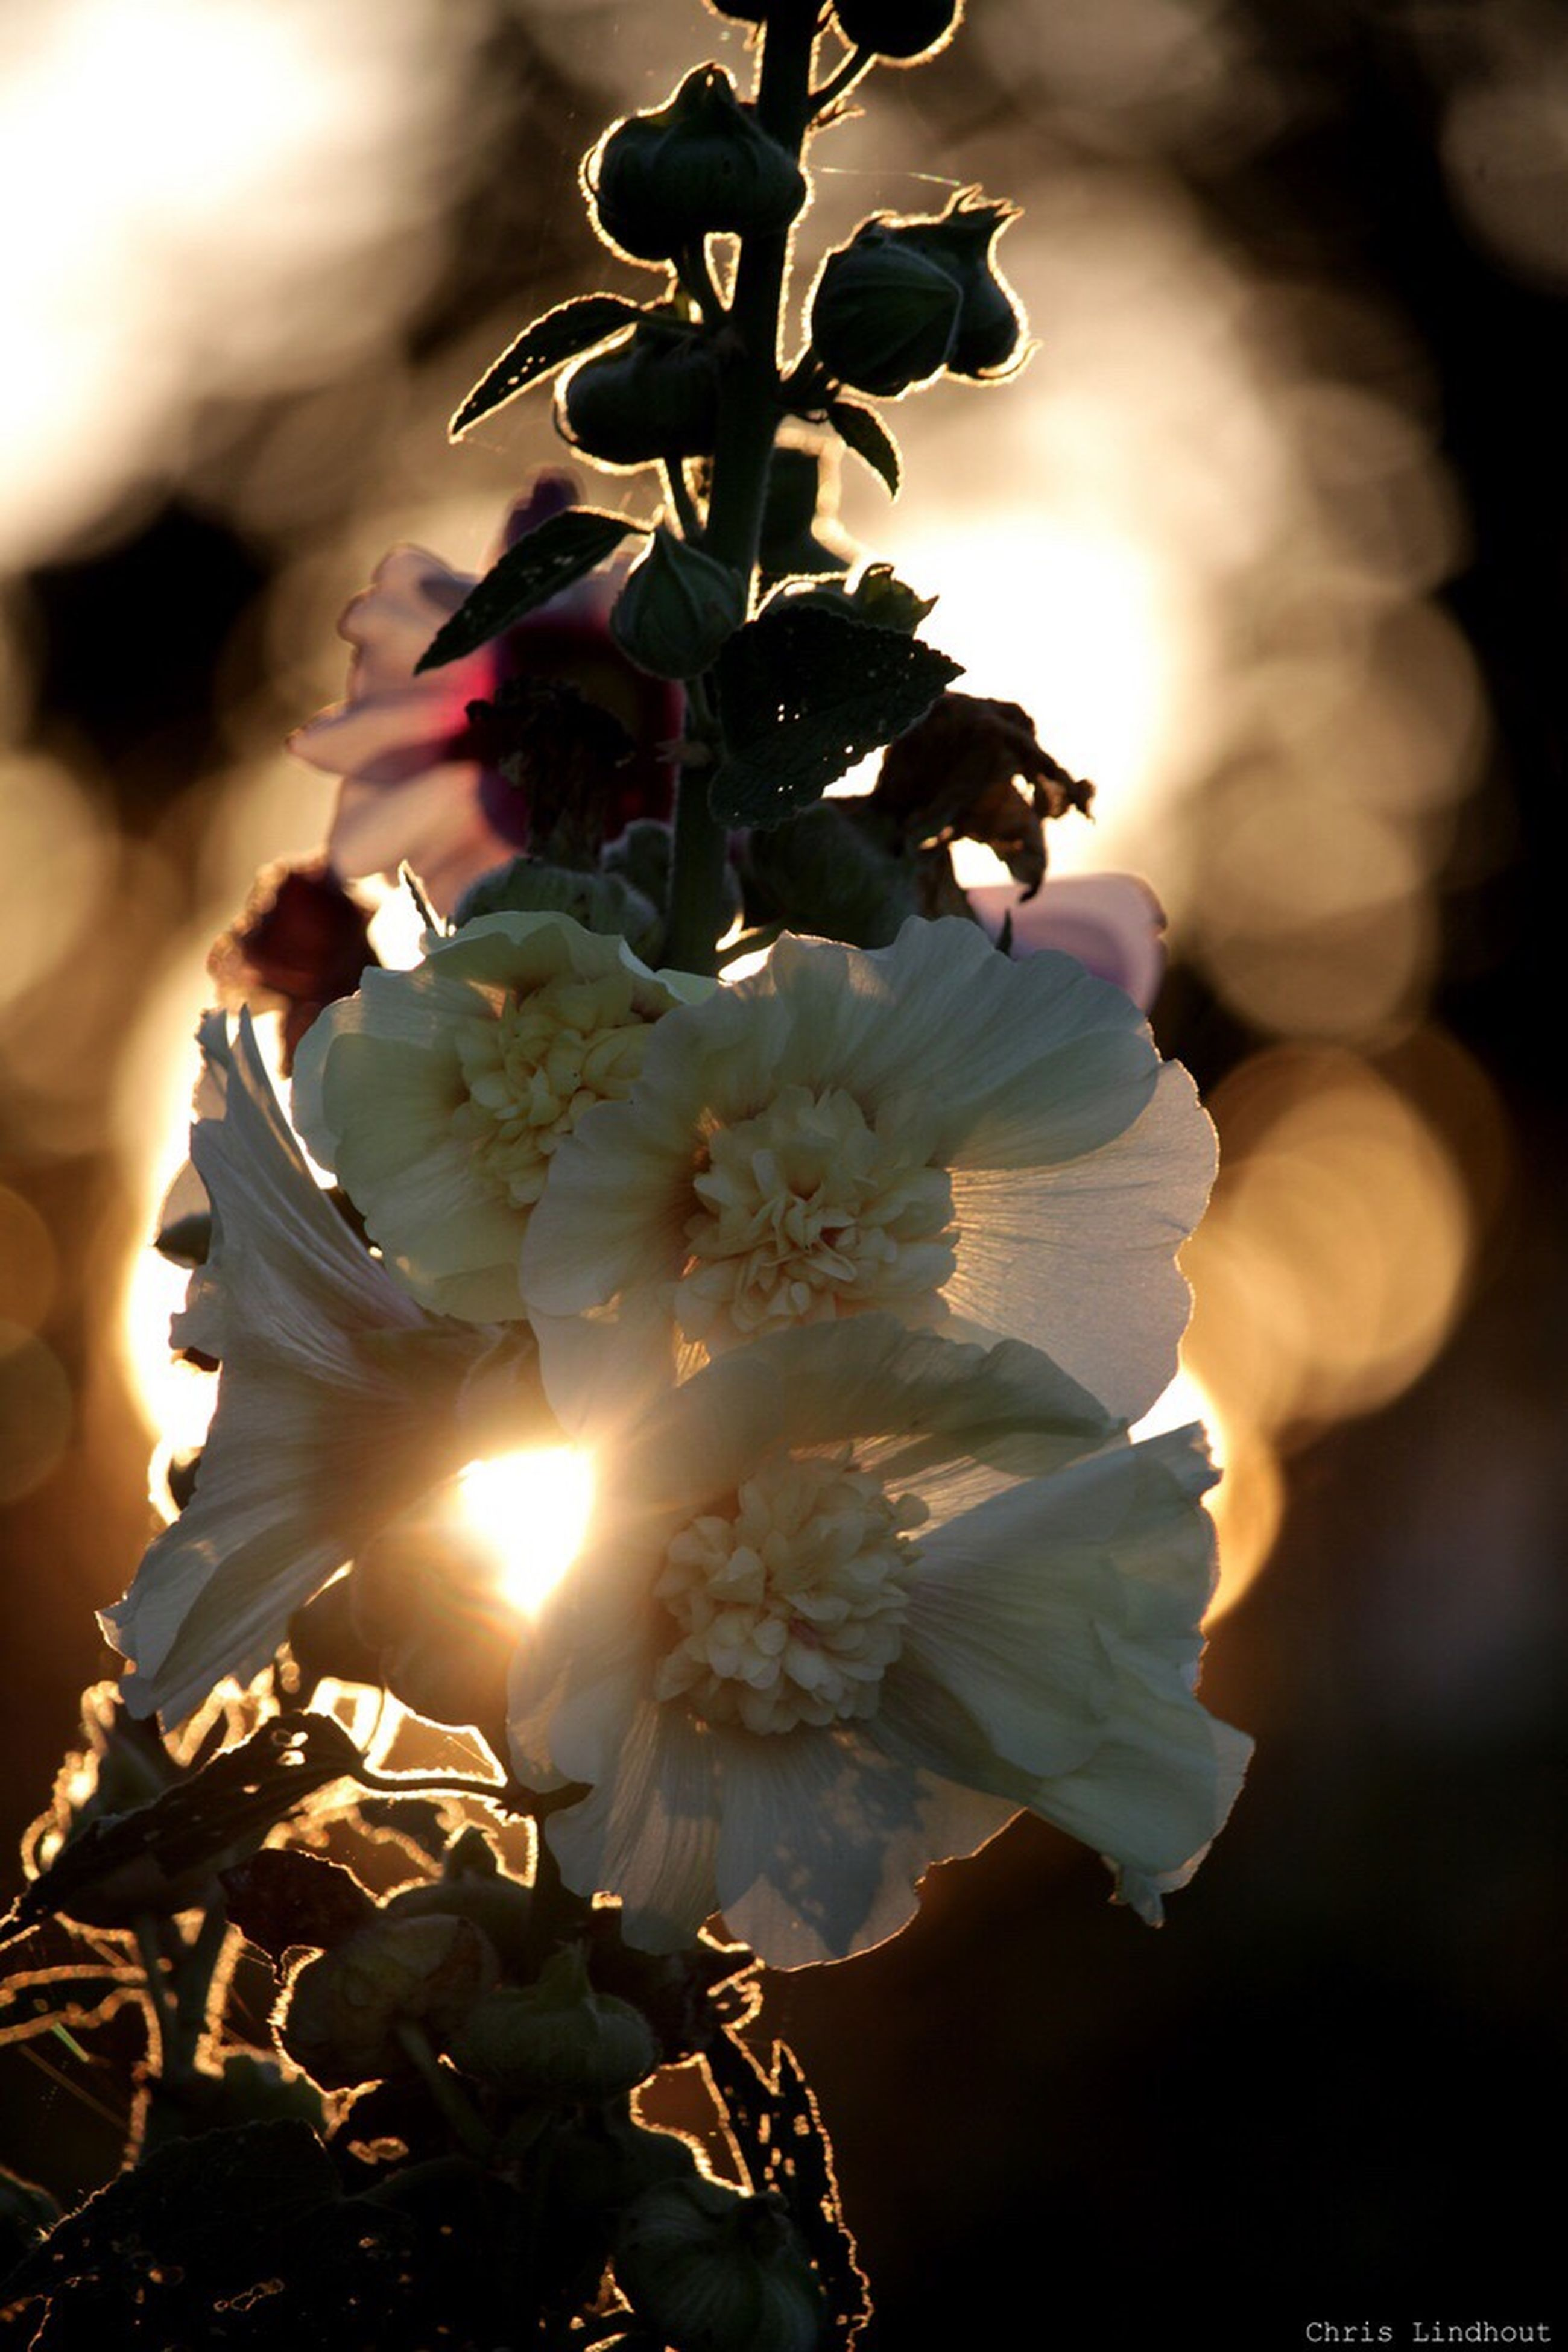 close-up, flower, back lit, sunlight, leaf, sun, freshness, plant, beauty in nature, fragility, growth, nature, blossom, sunbeam, bunch of flowers, focus on foreground, springtime, botany, bright, in bloom, cherry blossom, flower head, petal, cherry tree